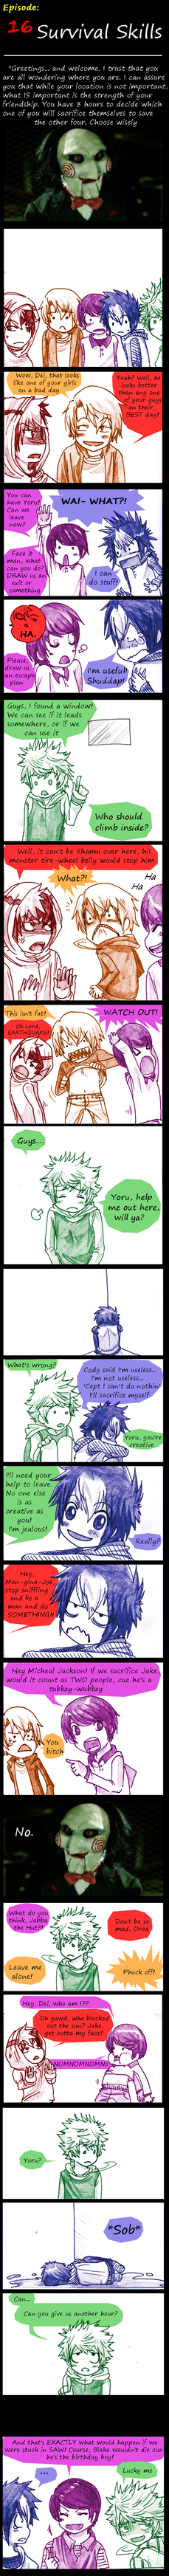 Aww Dude...Ep 16 [Survival Skills] by AmukaUroy